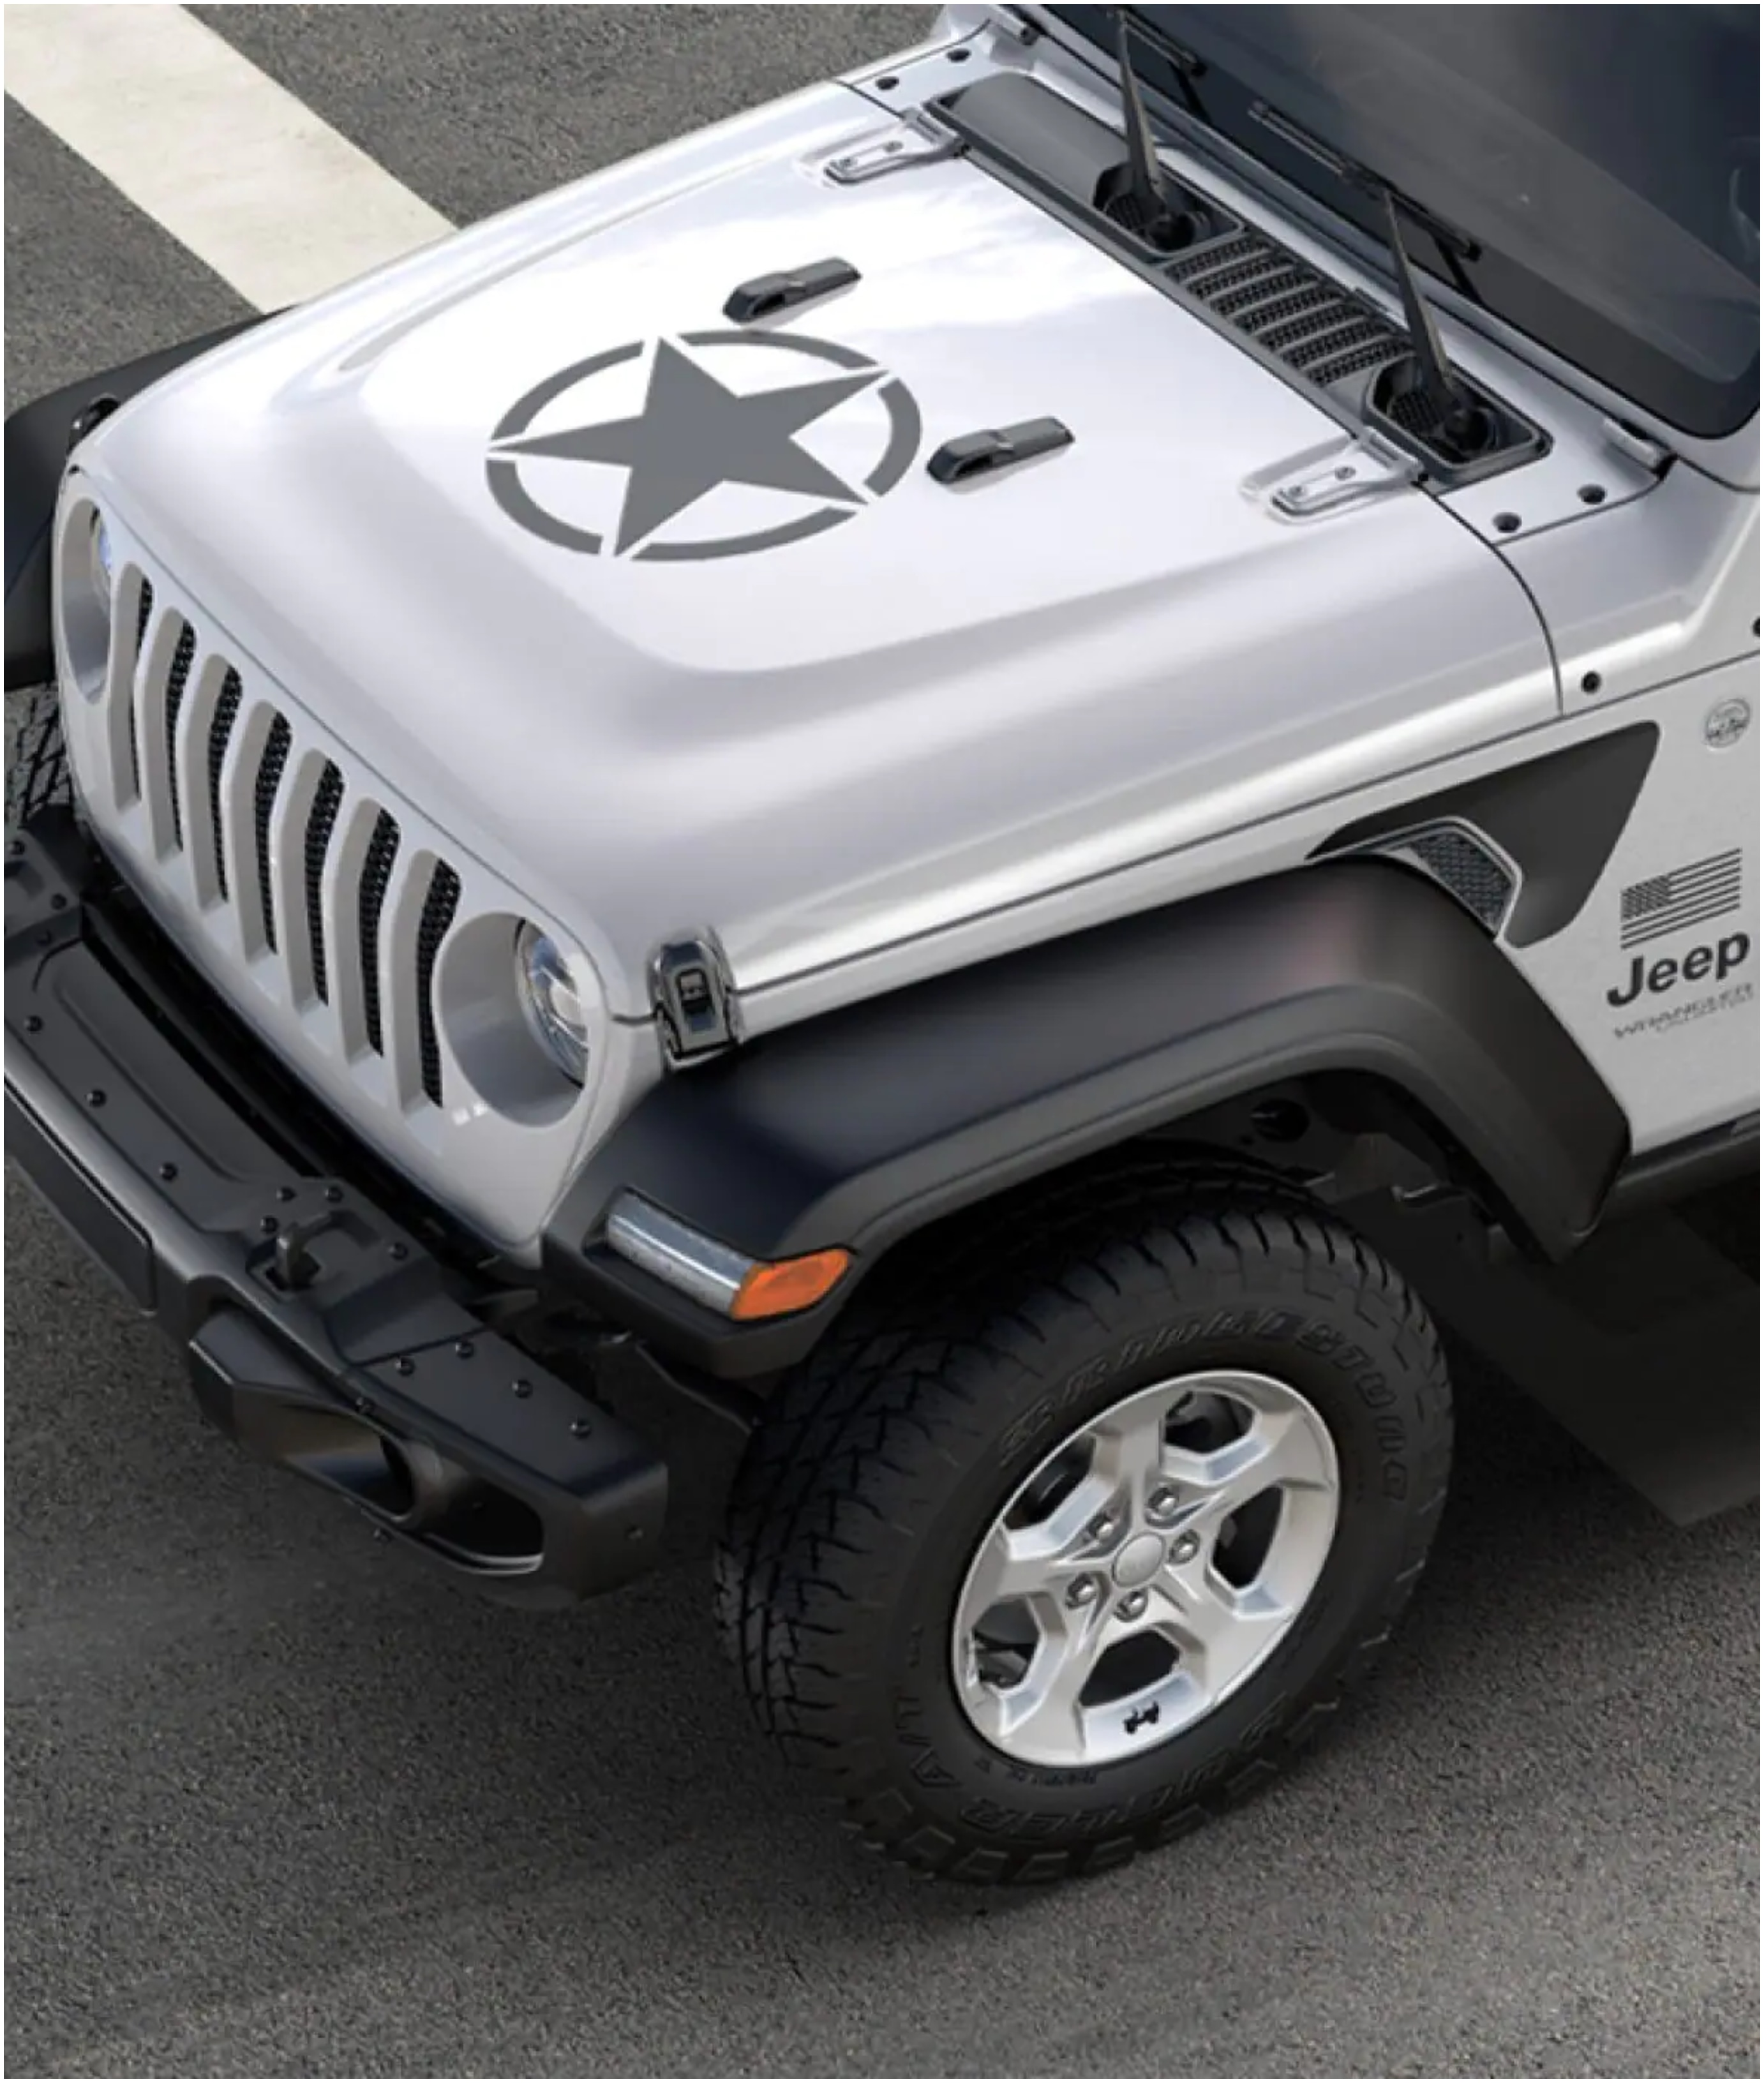 Close-Up of Jeep Wrangler Freedom Edition Hood with black star decal